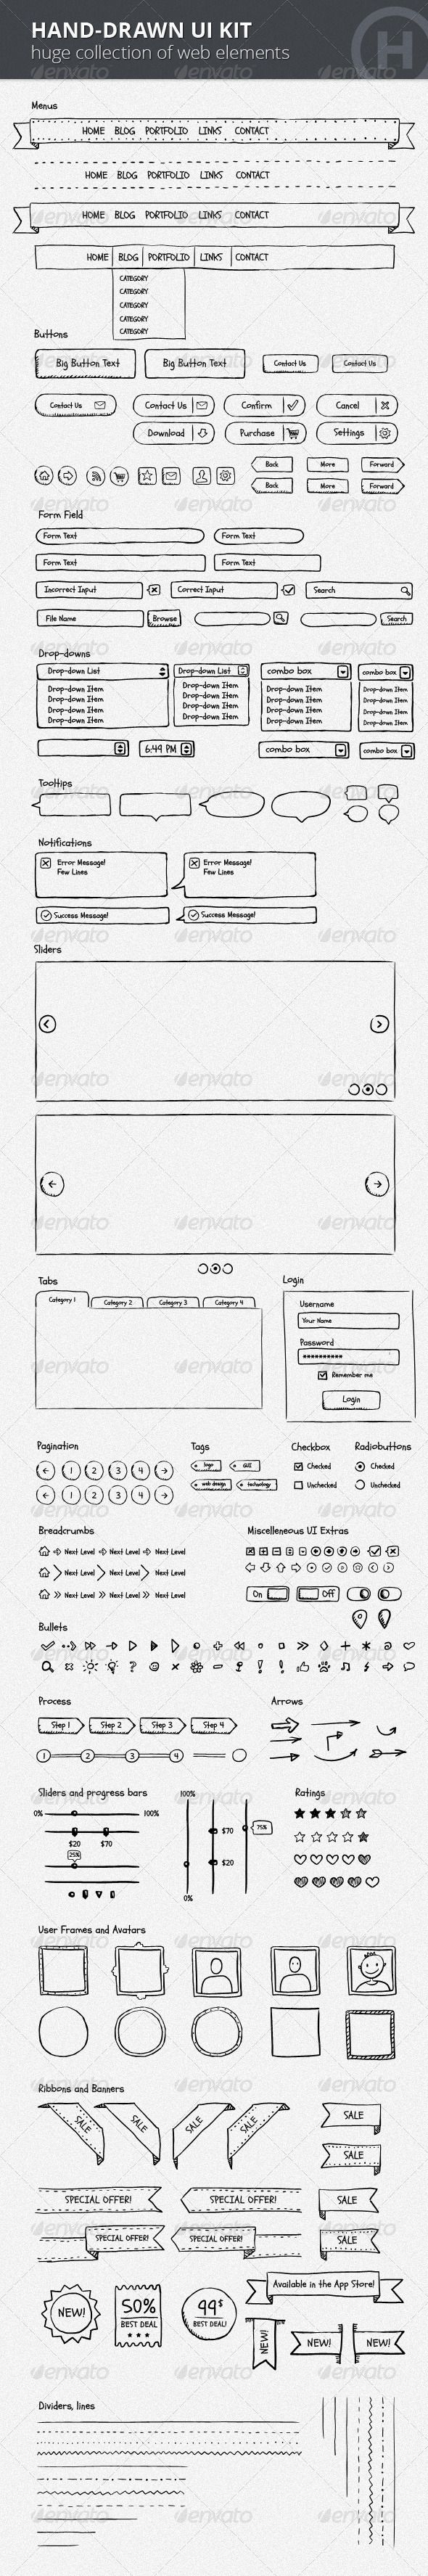 Hand-Drawn UI Kit I fully appreciate the raw sketch ideation of a design so we don't get led astray by design but rather focus on UX.